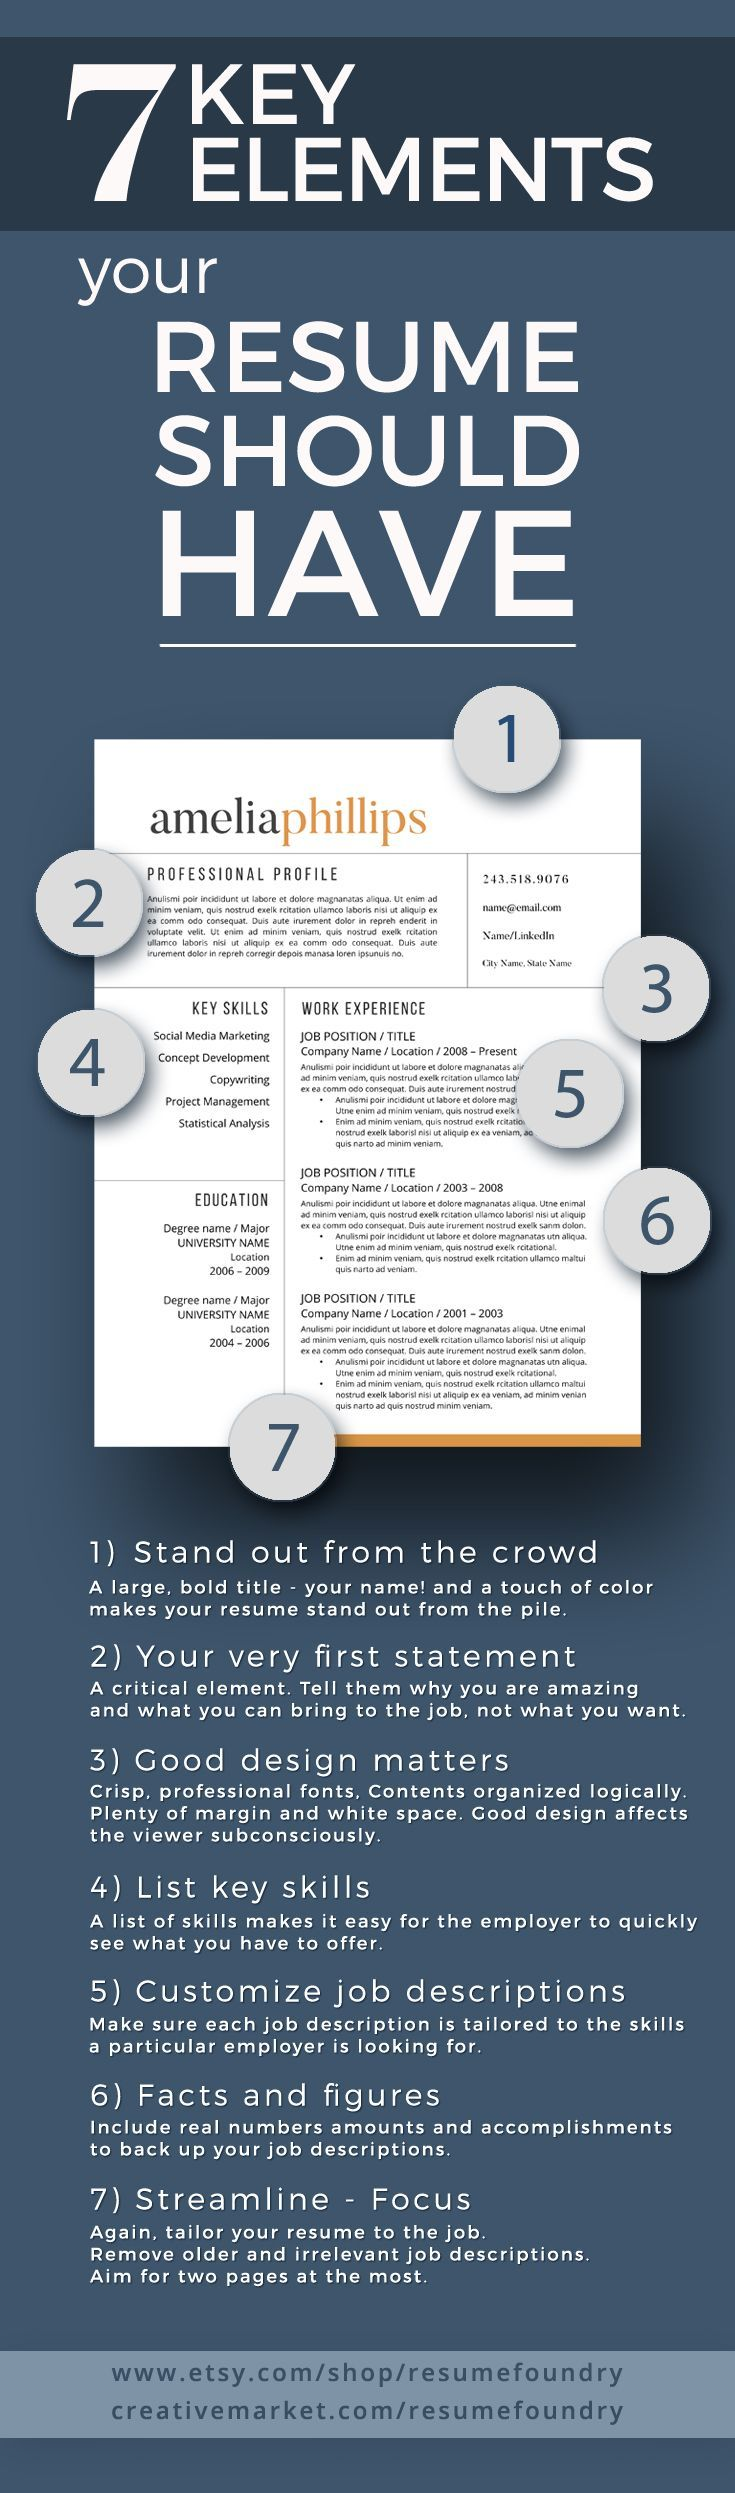 7 Key Elements your resume should have - does yours? - Tap the link now to Learn how I made it to 1 million in sales in 5 months with e-commerce! I'll give you the 3 advertising phases I did to make it for FREE!